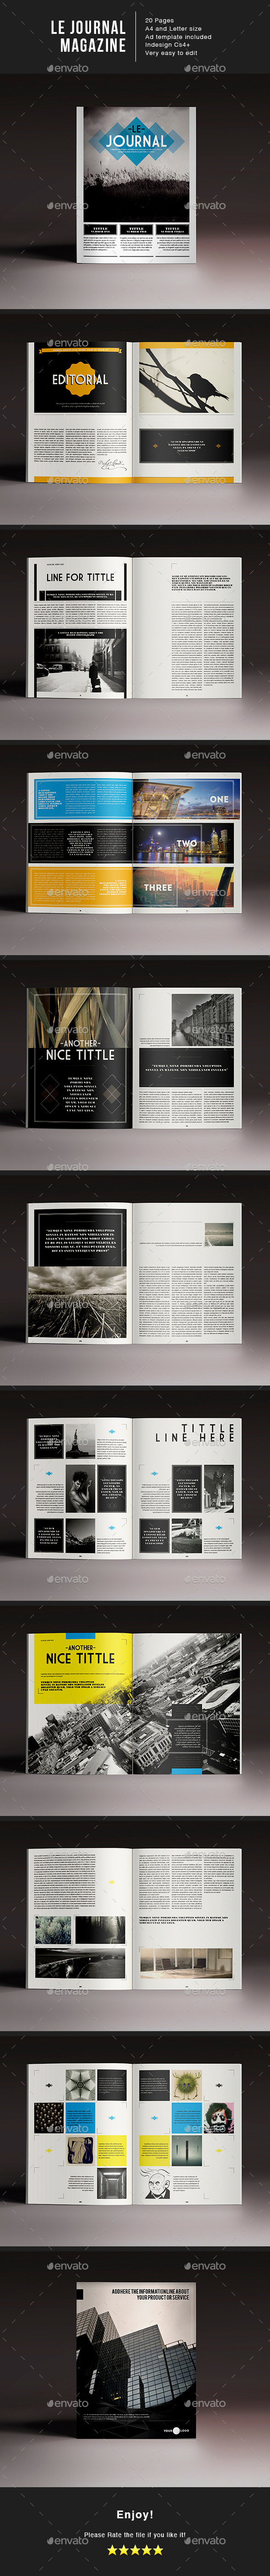 Le Journal Magazine Indesign Template - Magazines Print Templates